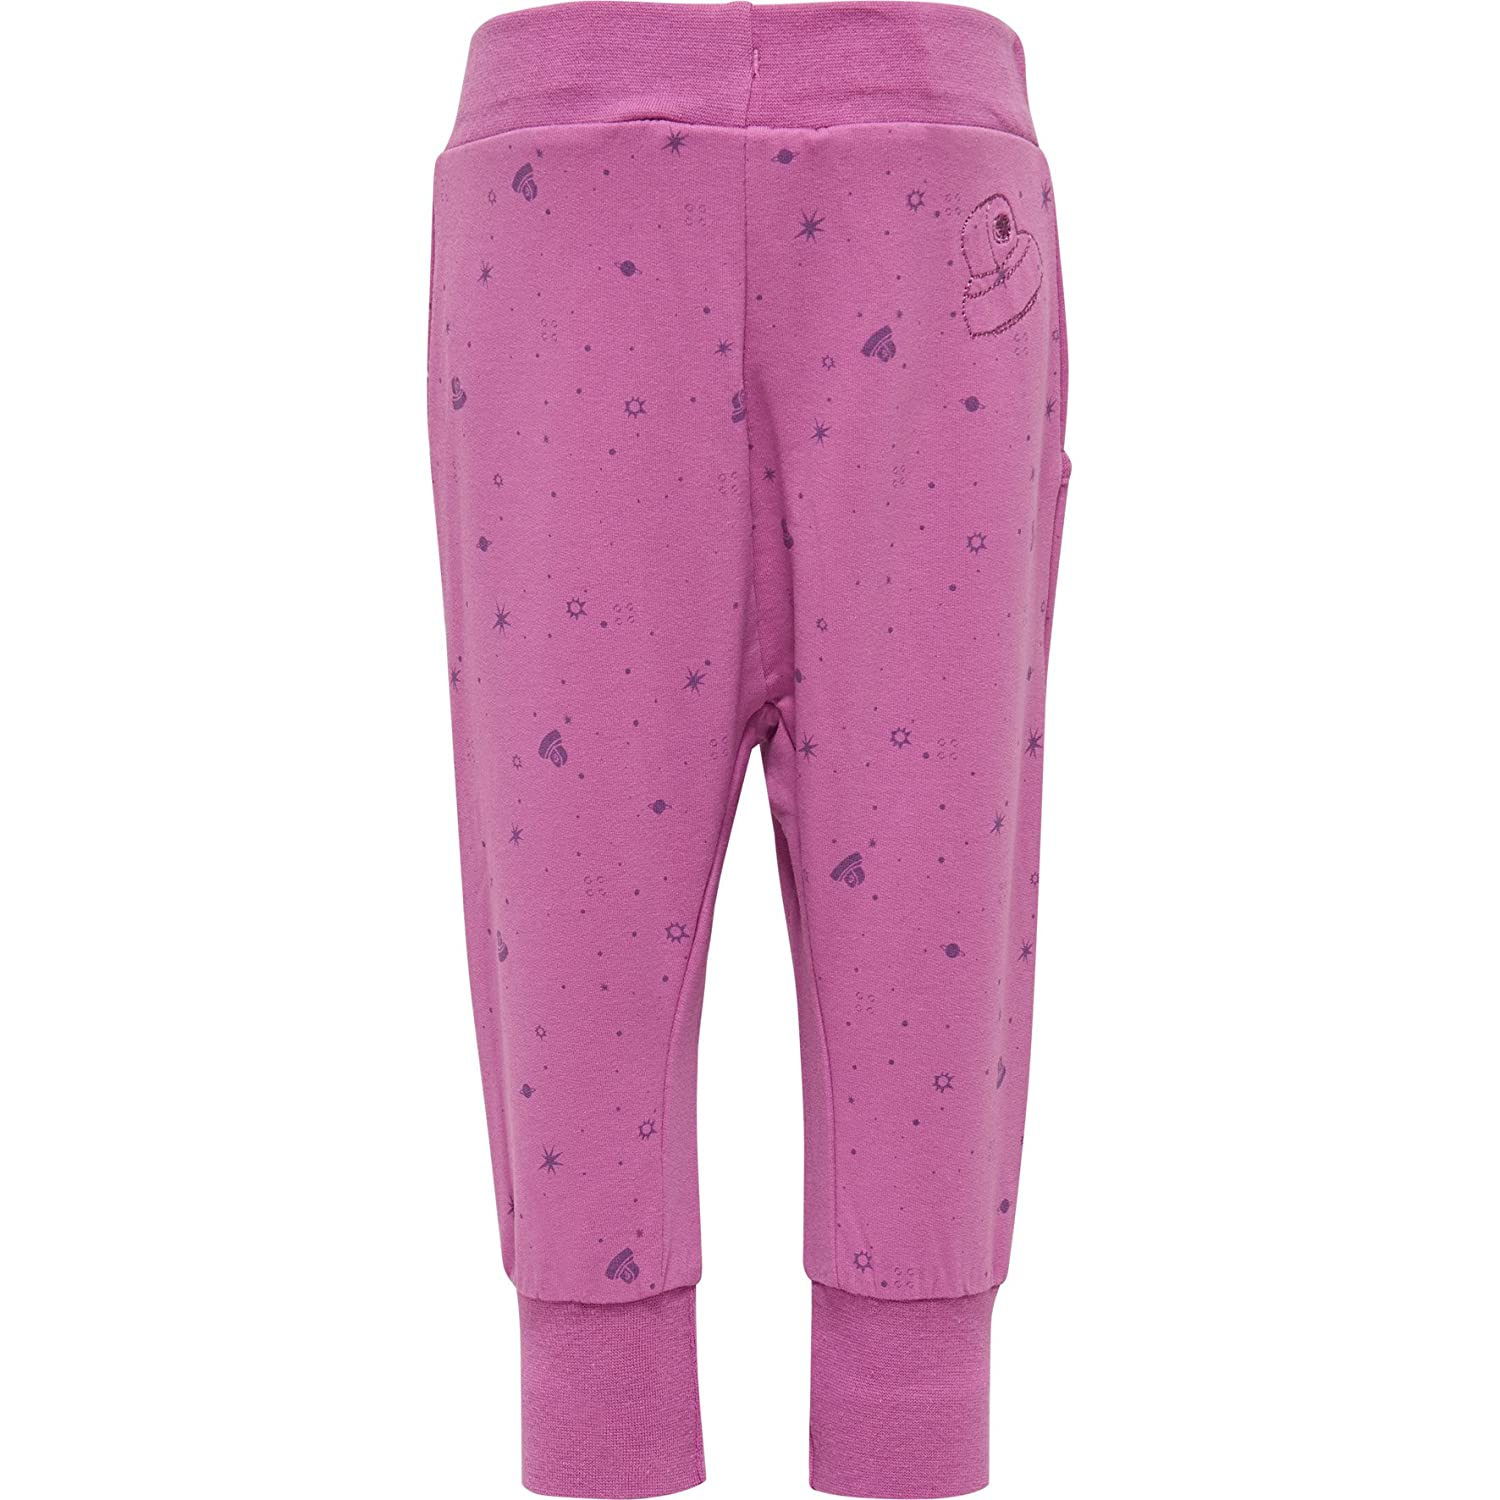 LEGO Duplo Papina 603 Sports Pants 92, Purple